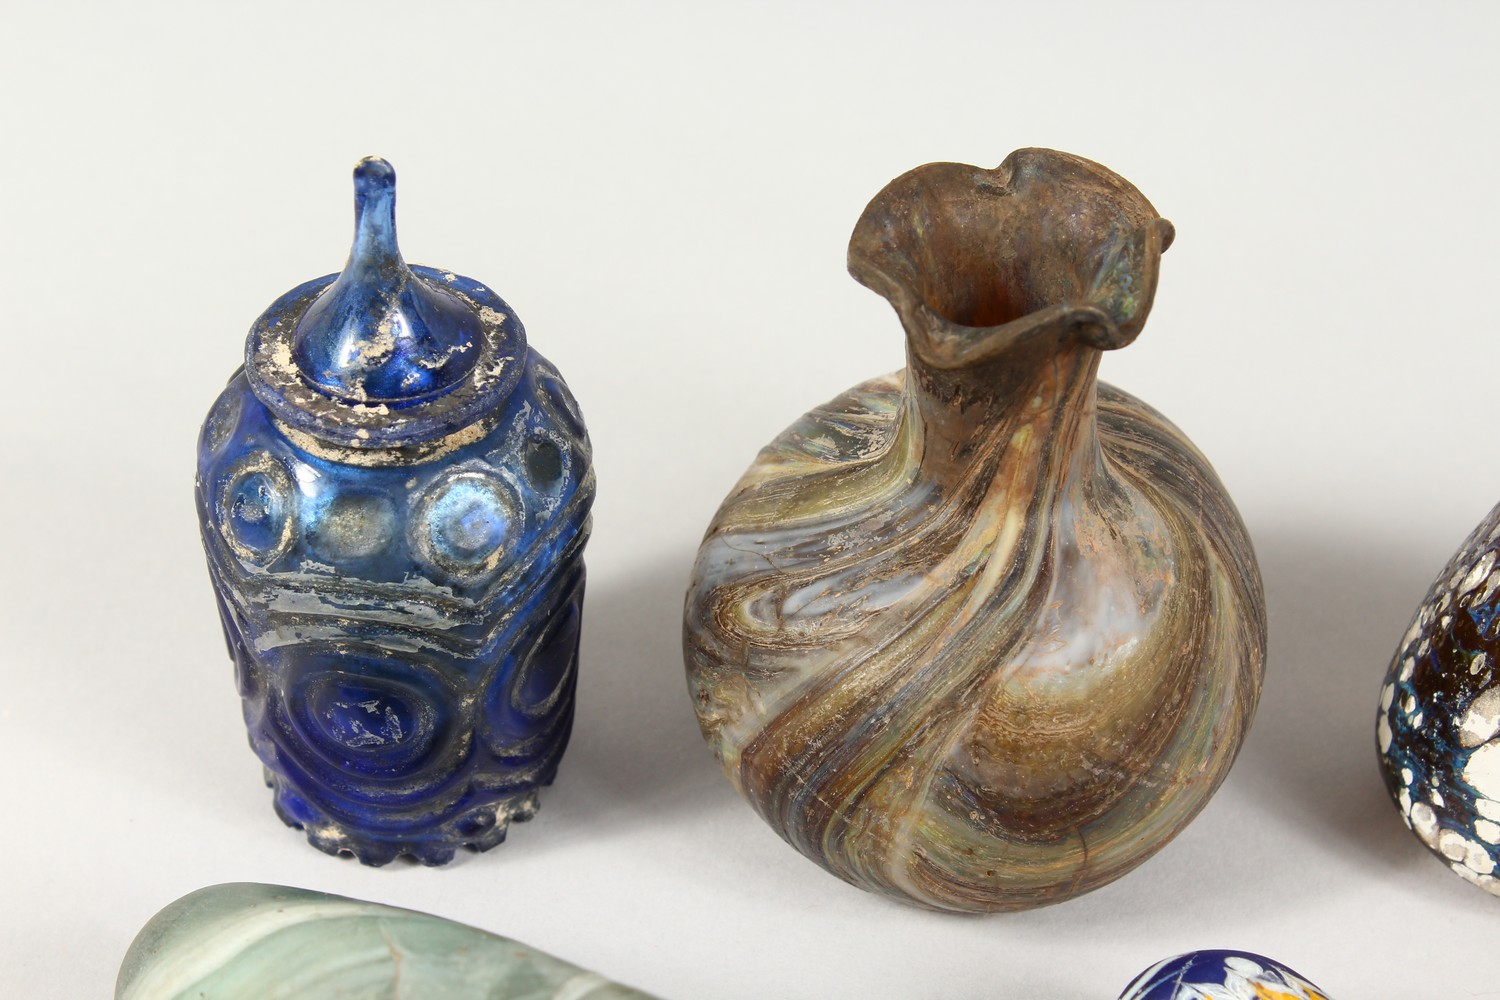 A GROUP OF THIRTEEN ROMAN GLASS BOTTLES AND JARS, including three tops in the form of heads (13). - Image 2 of 11